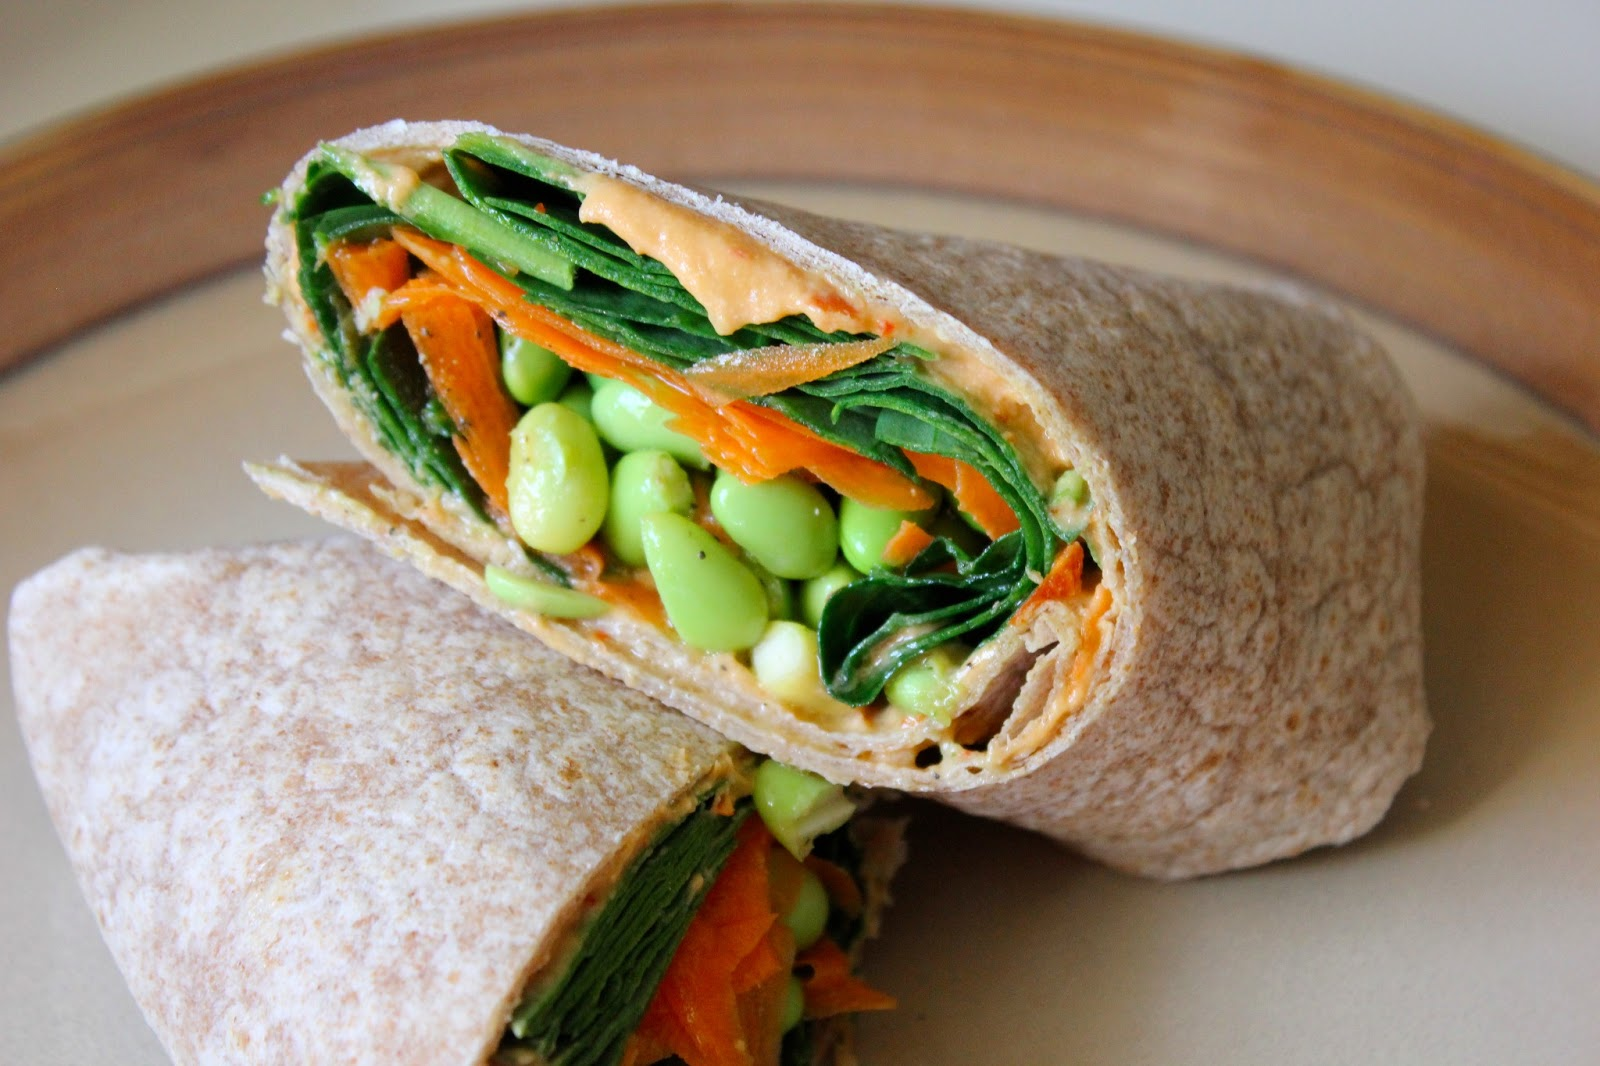 ... : Easy Lunch Idea: Edamame Roasted Red Pepper Hummus and Veggie Wrap